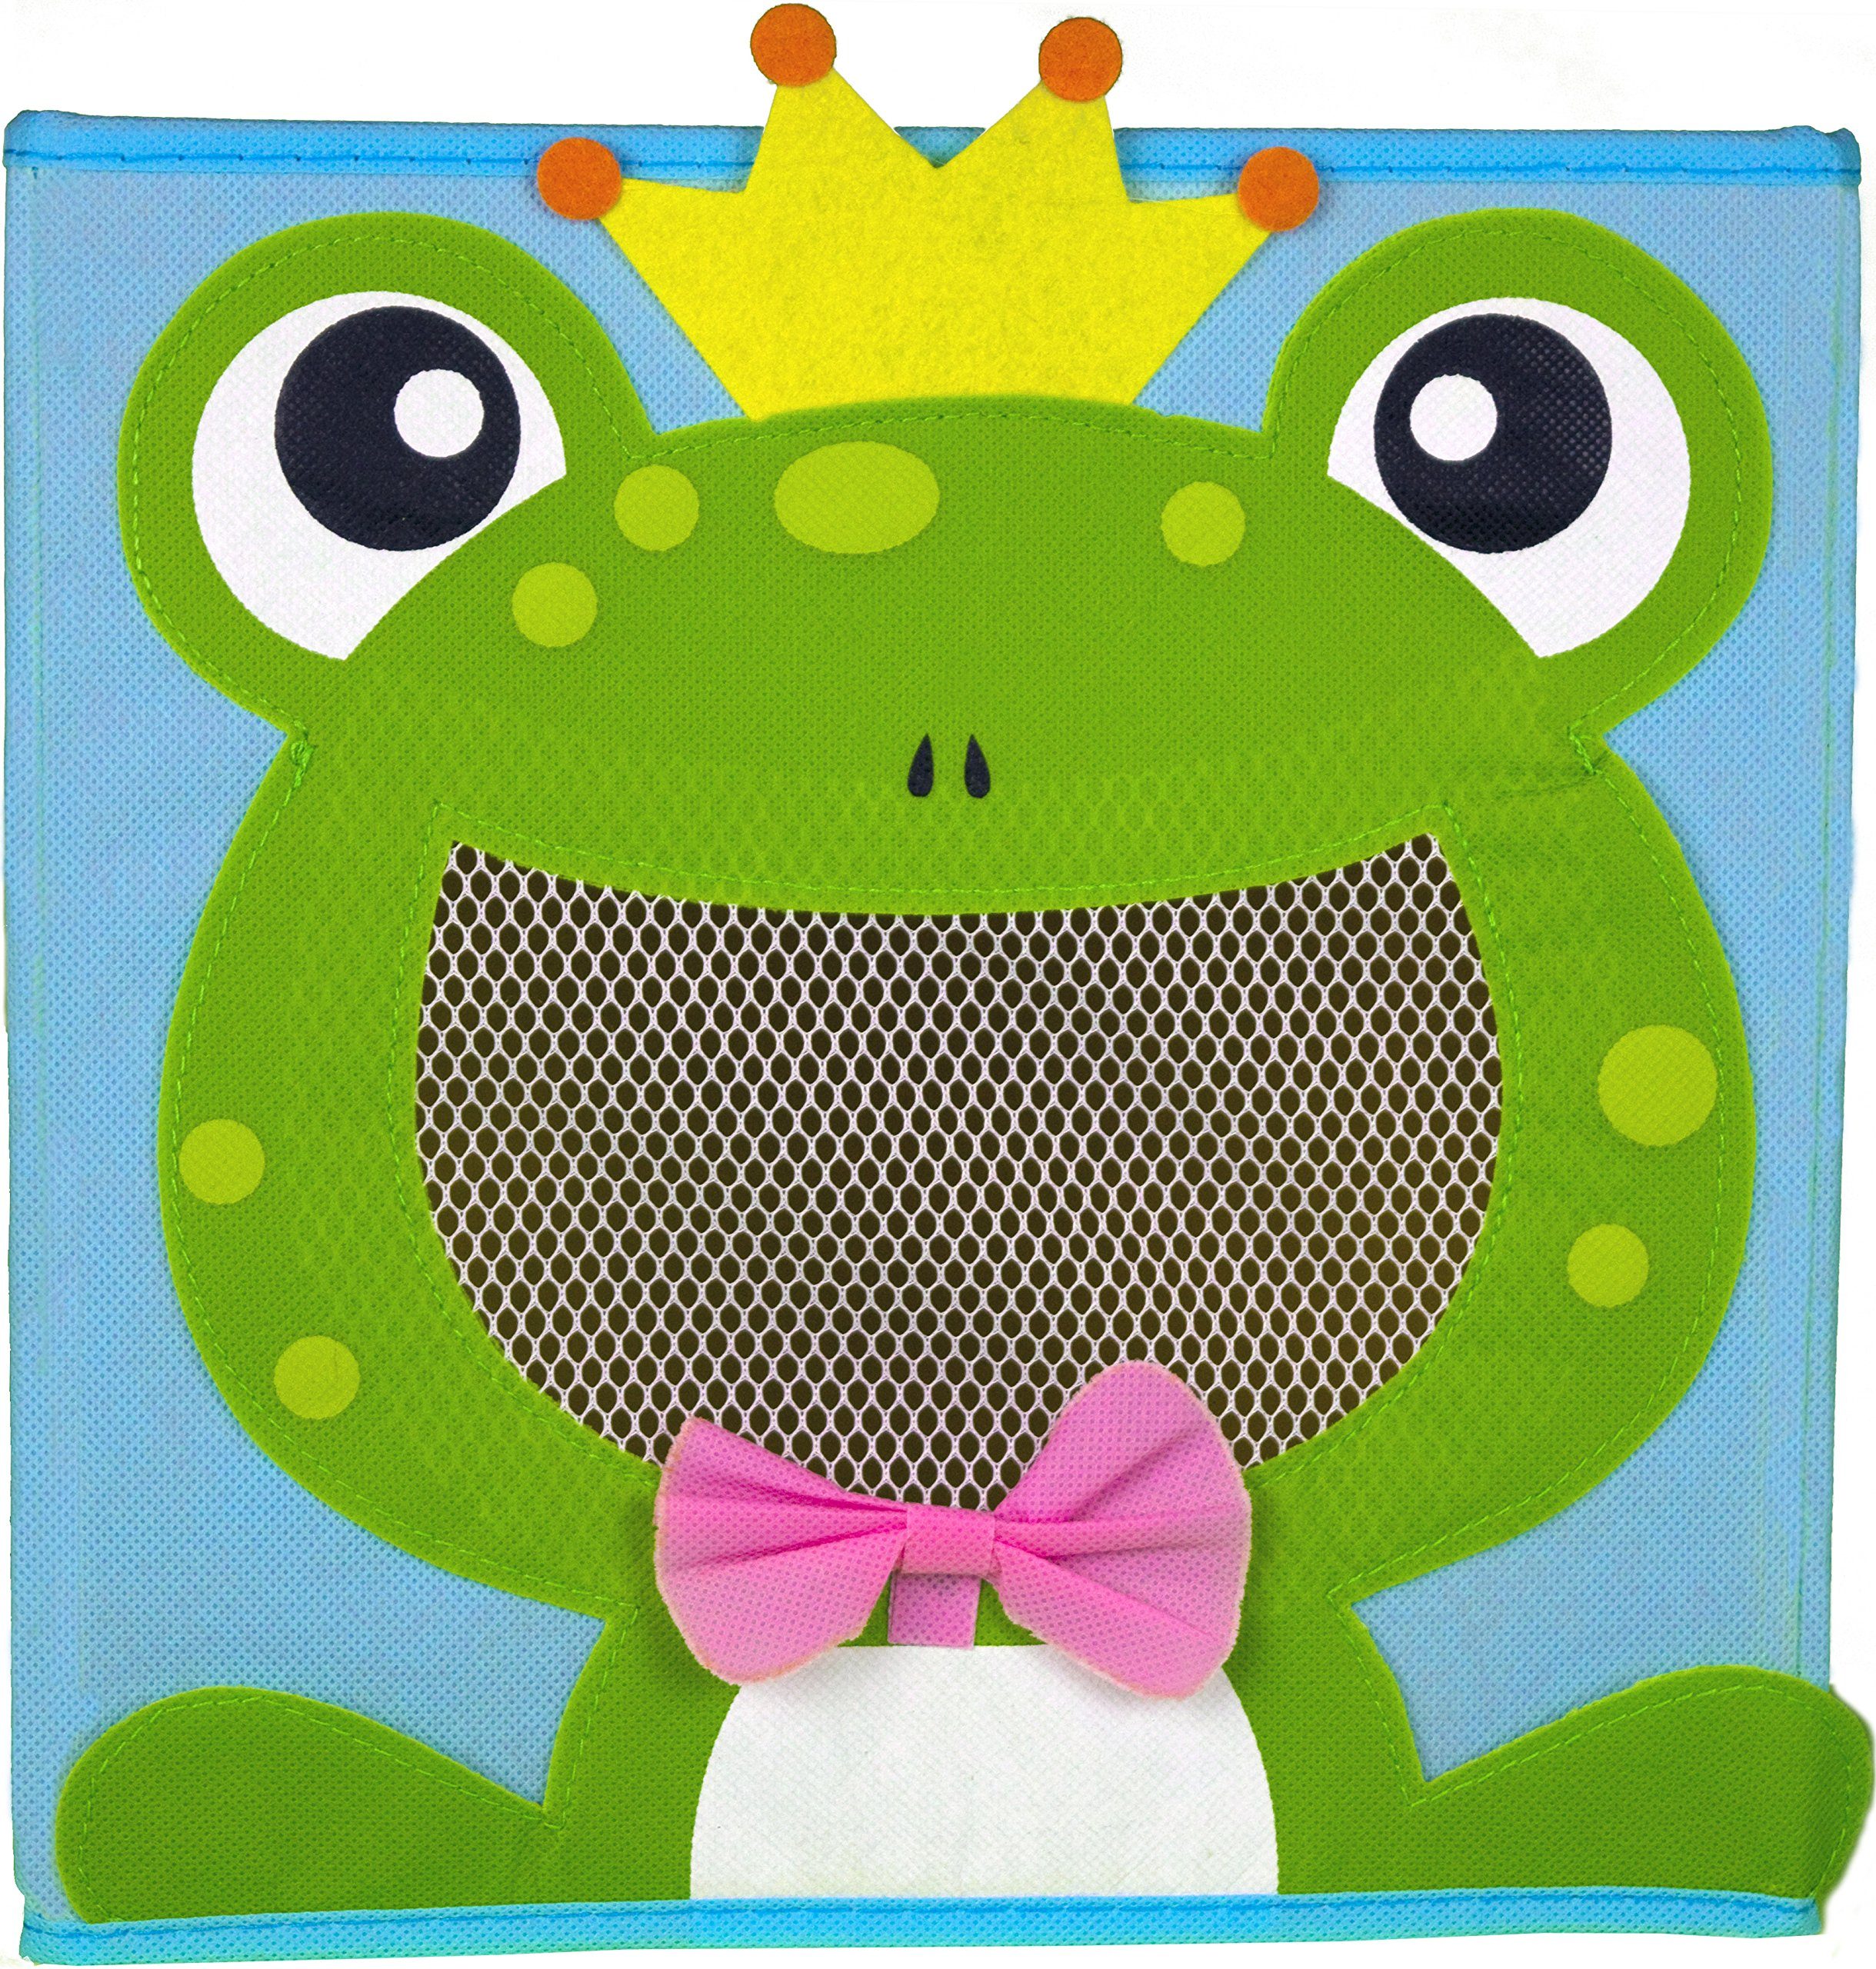 Cute Collapsible Storage Bins w/ View Window- Foldable cubes - 11x11 in. Folding Box (FROG)